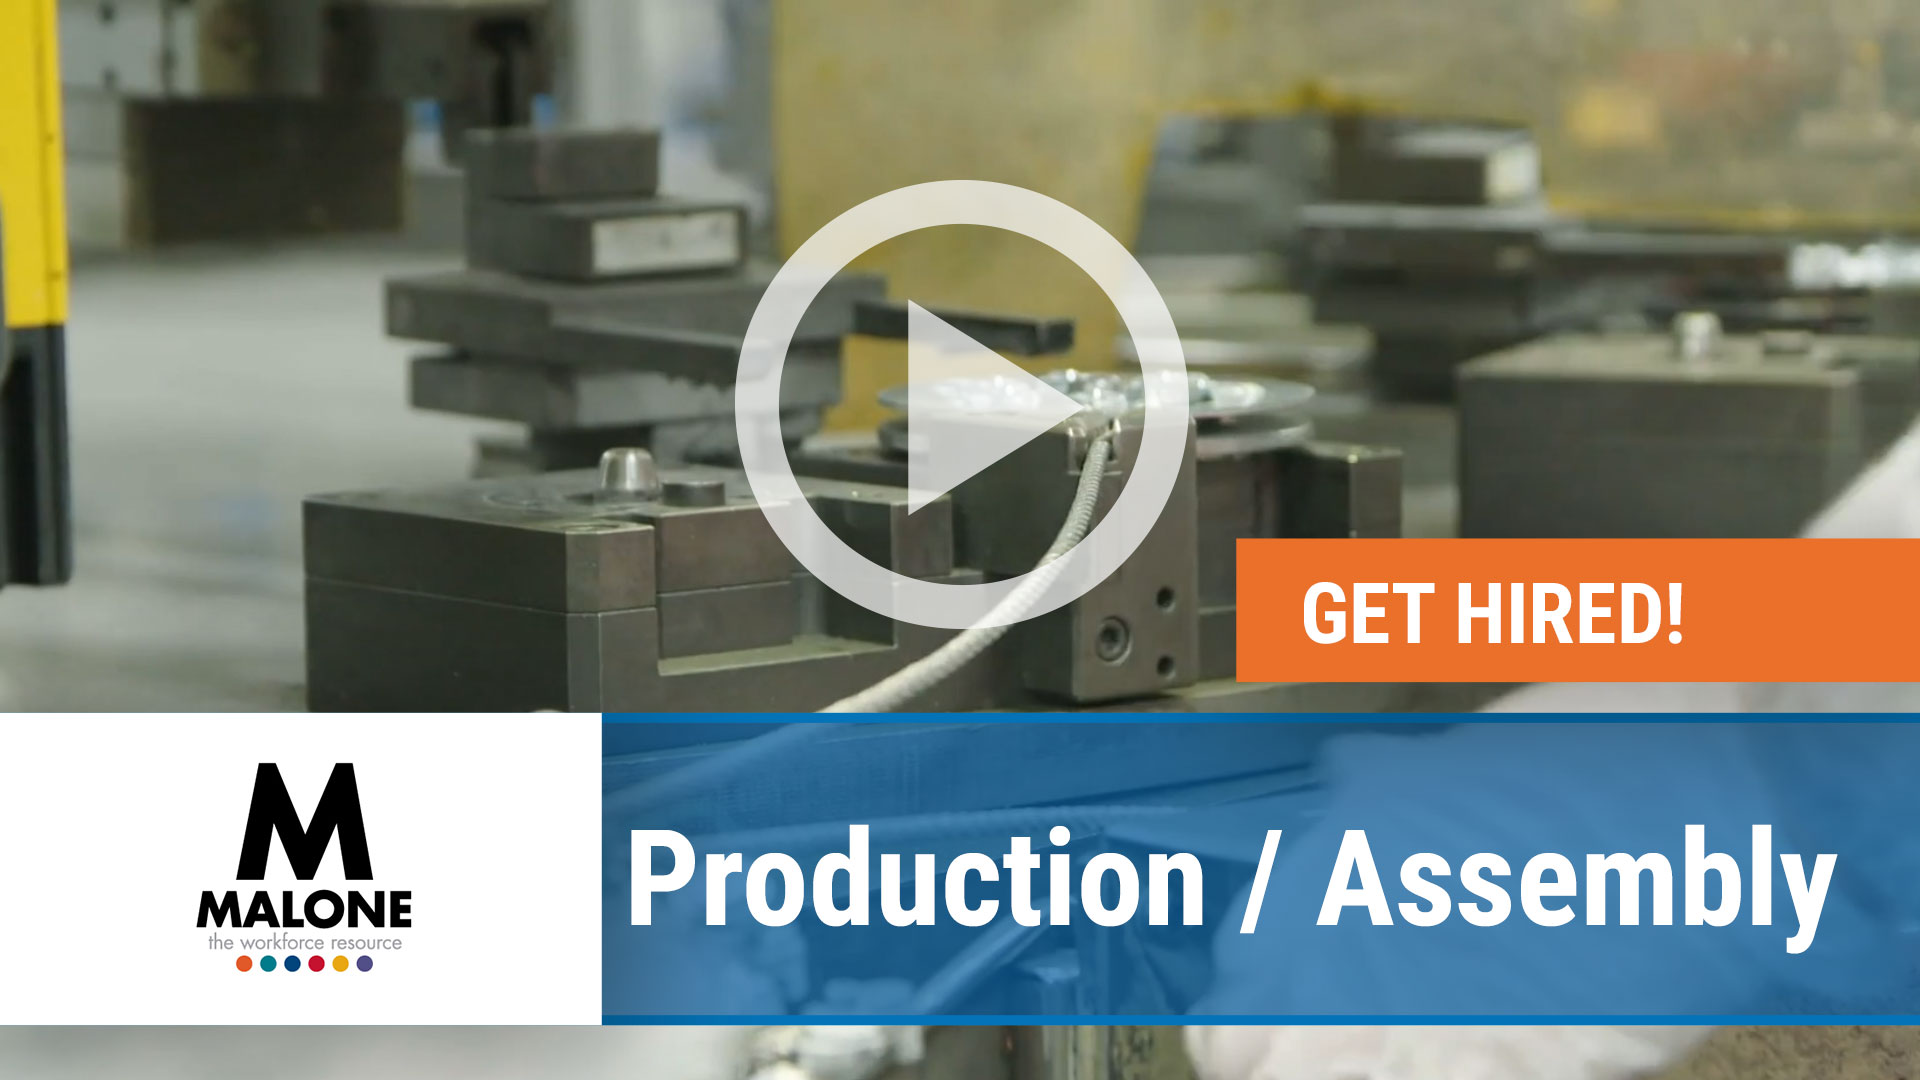 Watch our careers video for available job opening Production - Assembly in New Albany, Indiana